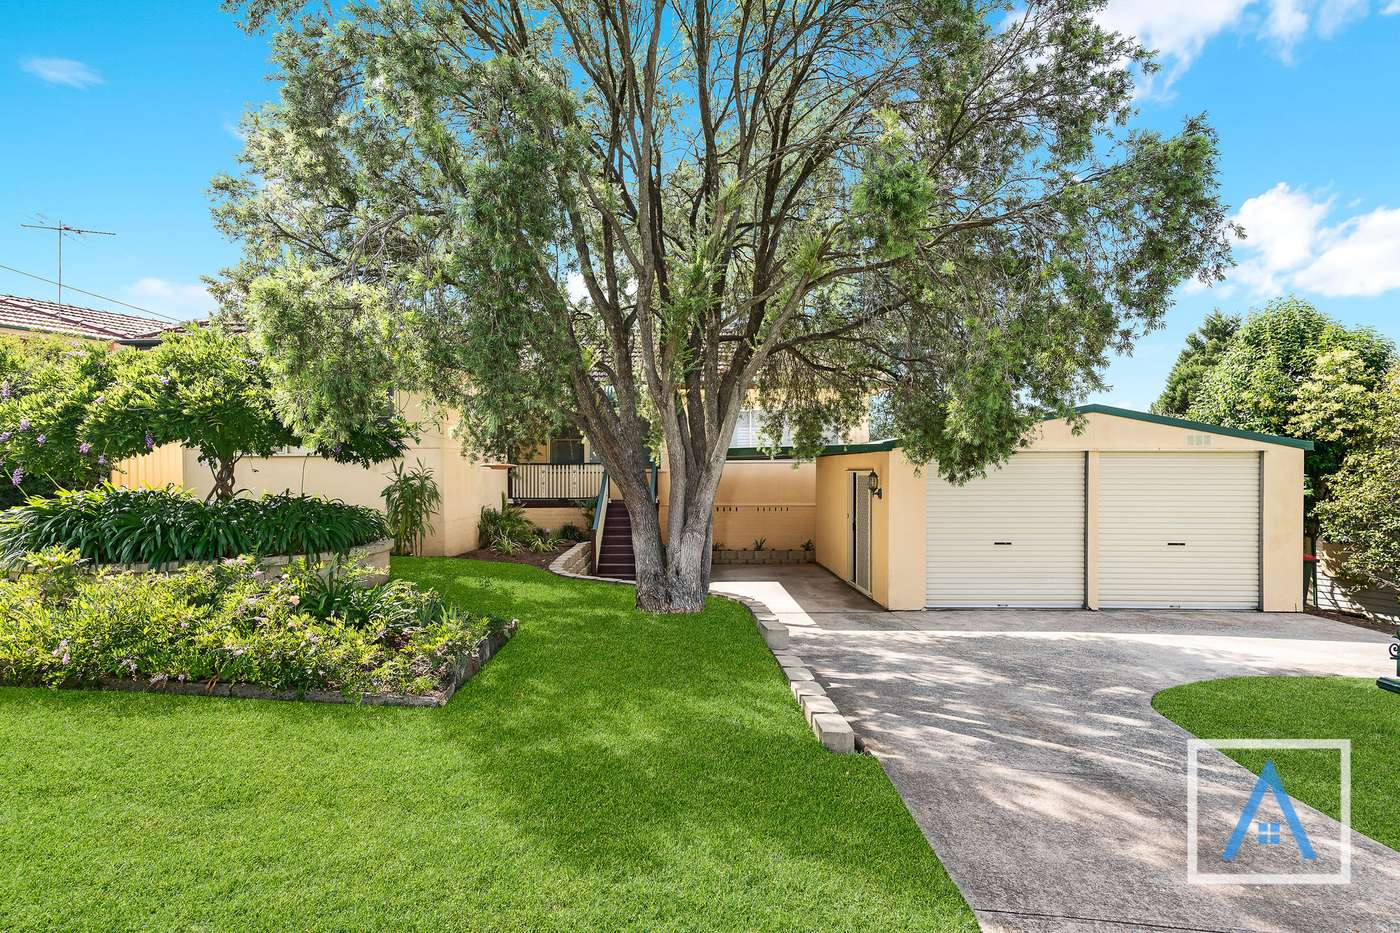 Main view of Homely house listing, 19 Carcoola Street, Campbelltown, NSW 2560